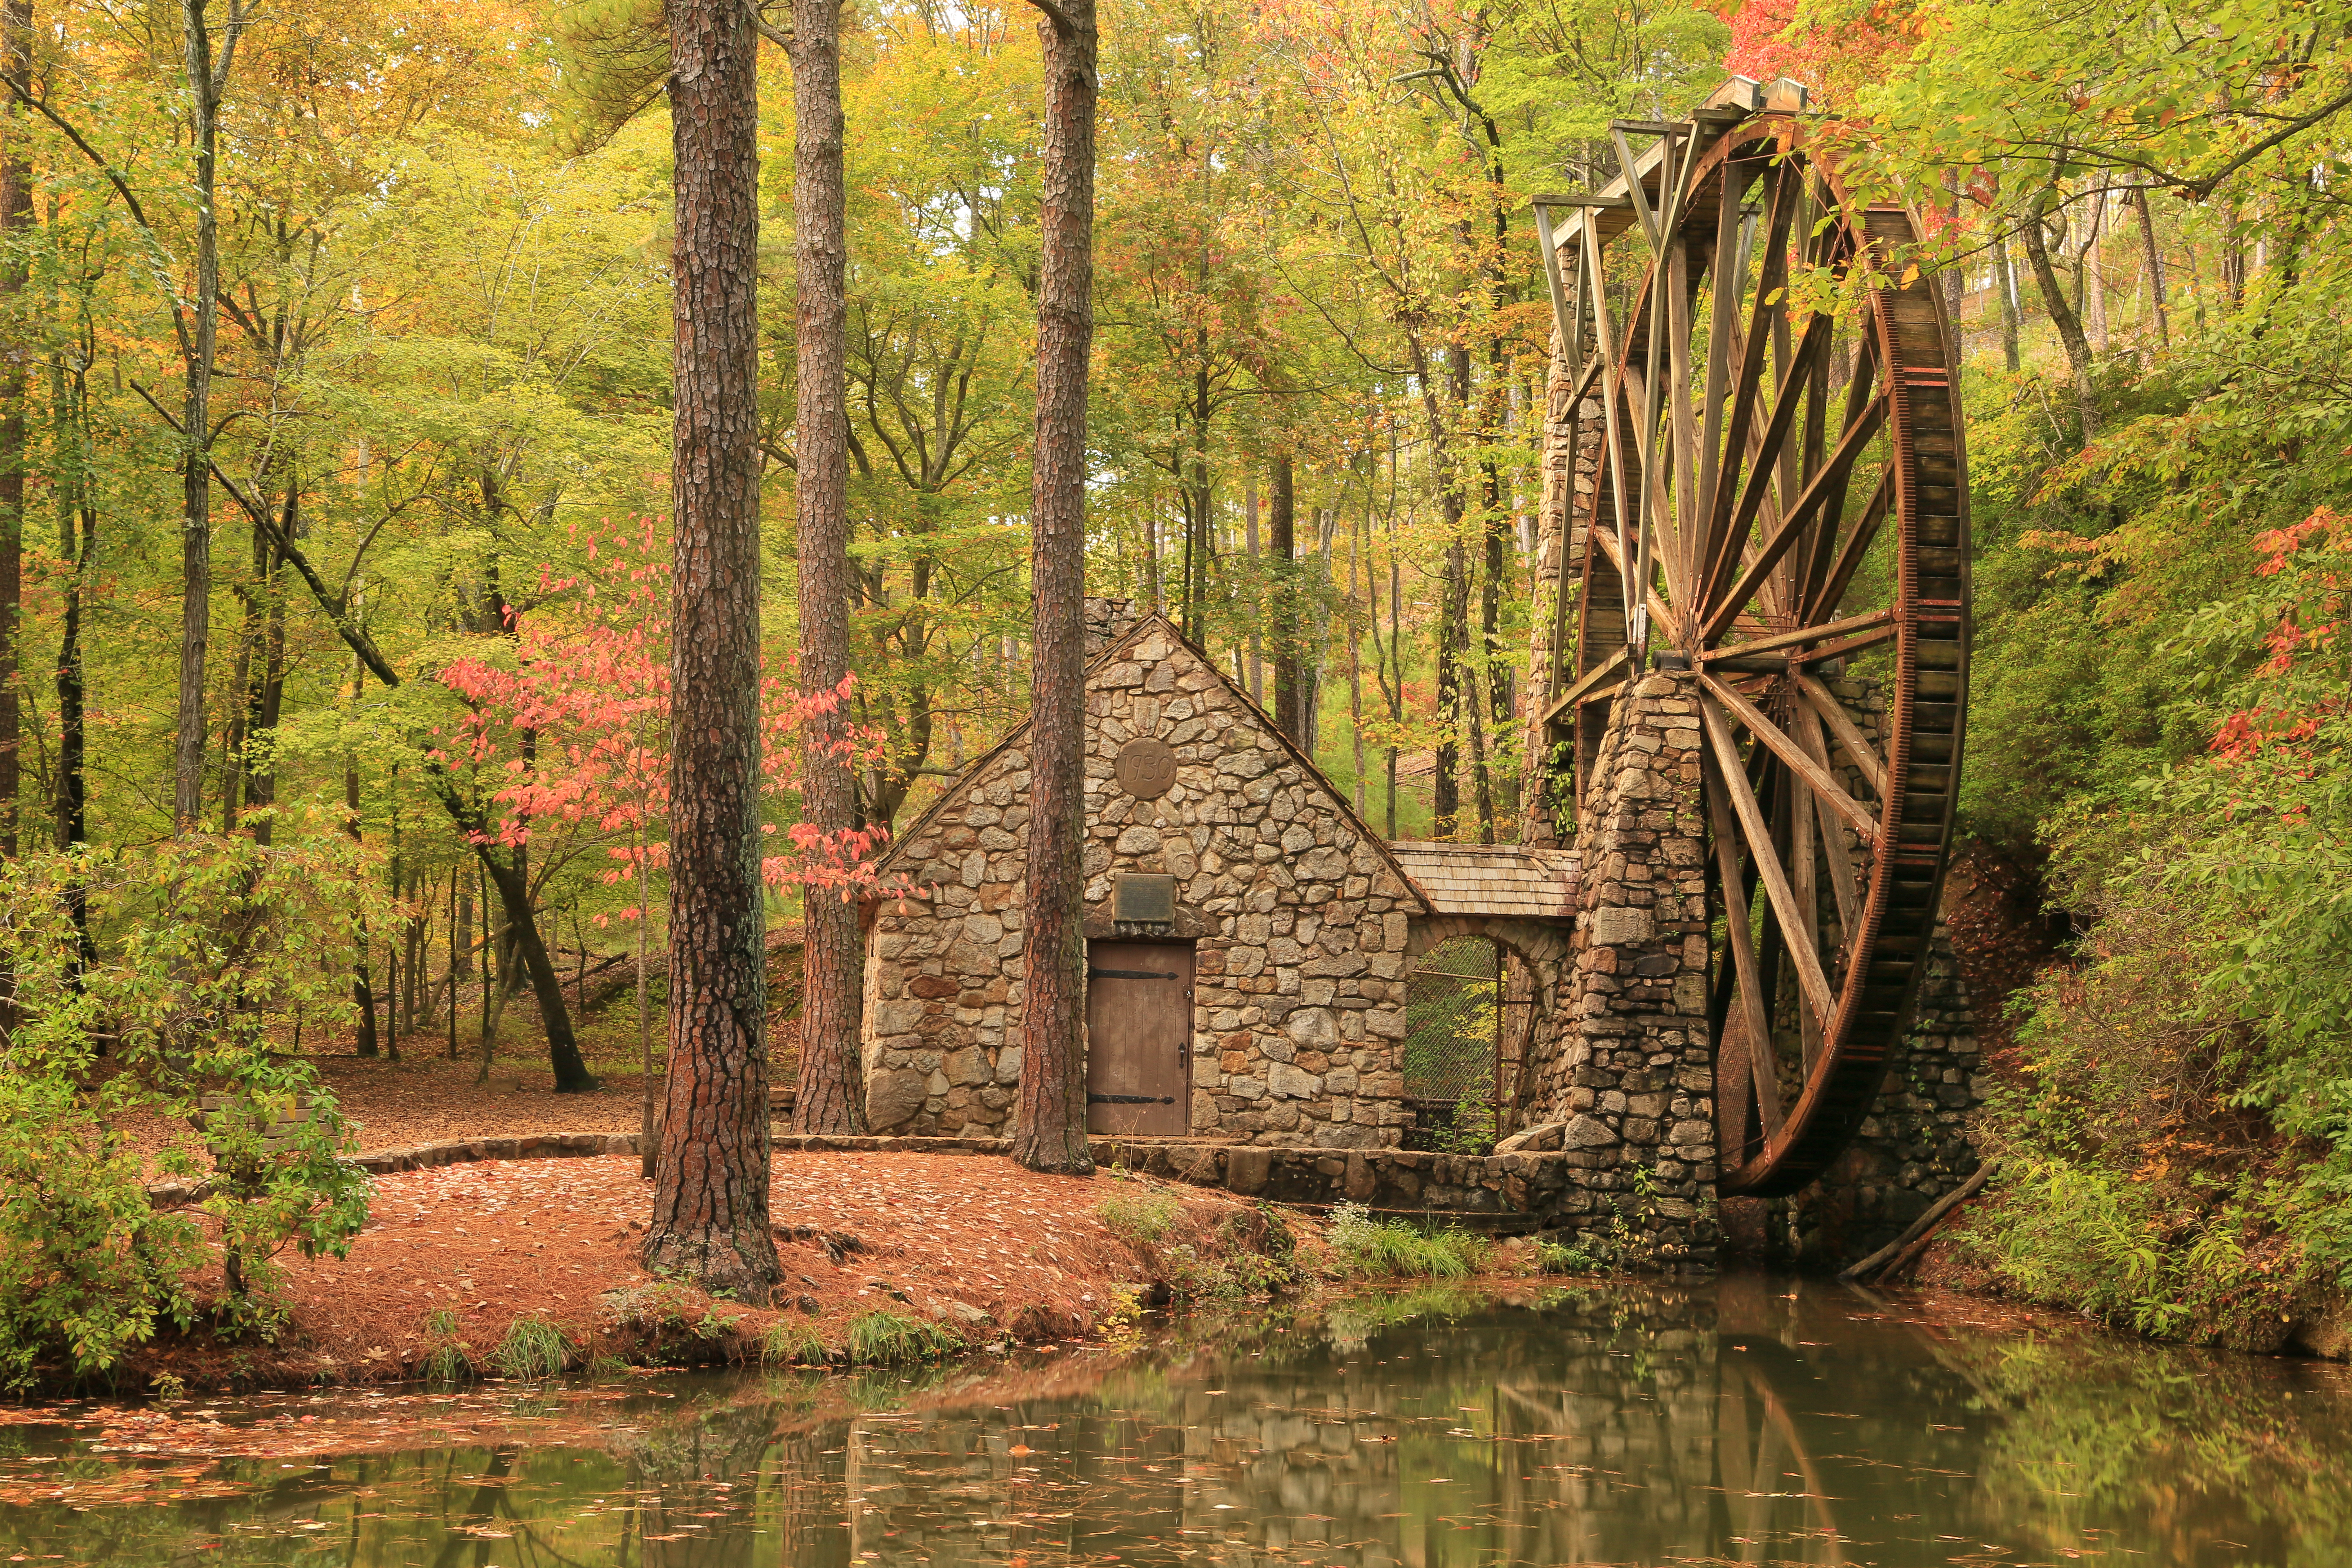 Old Mill, Berry College Campus, Rome, Floyd County, Georgia by Alan Cressler [5760 x 3840] x-post -r-HI_Res